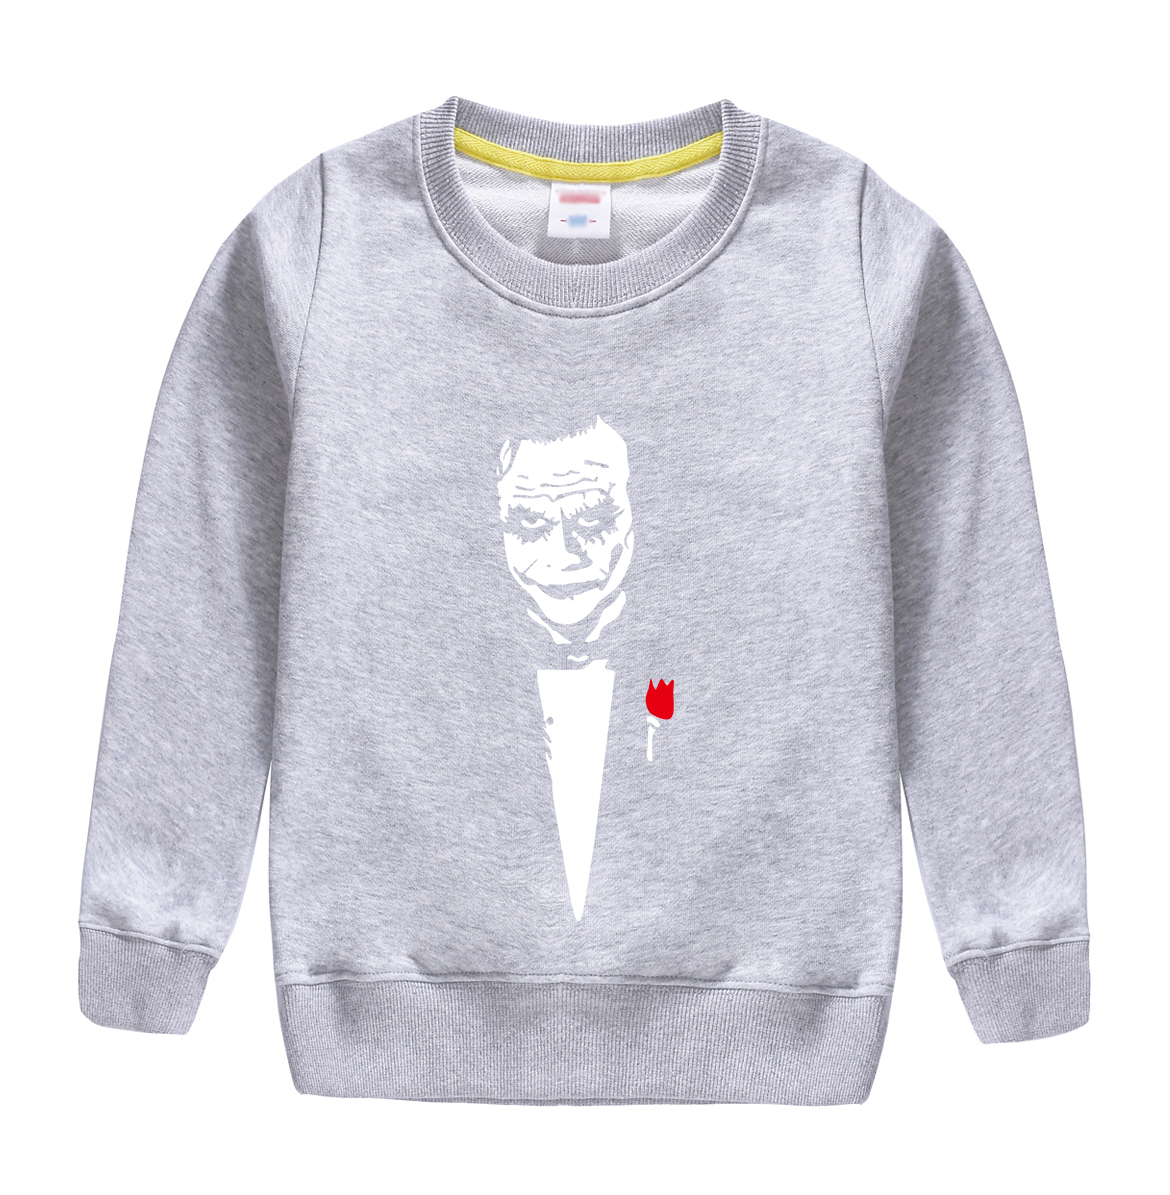 2018 new fashion funny man cartoon pattern cotton sweatshirt baby boy hoodie warm clothing design for 4-13t kids with 8 colors